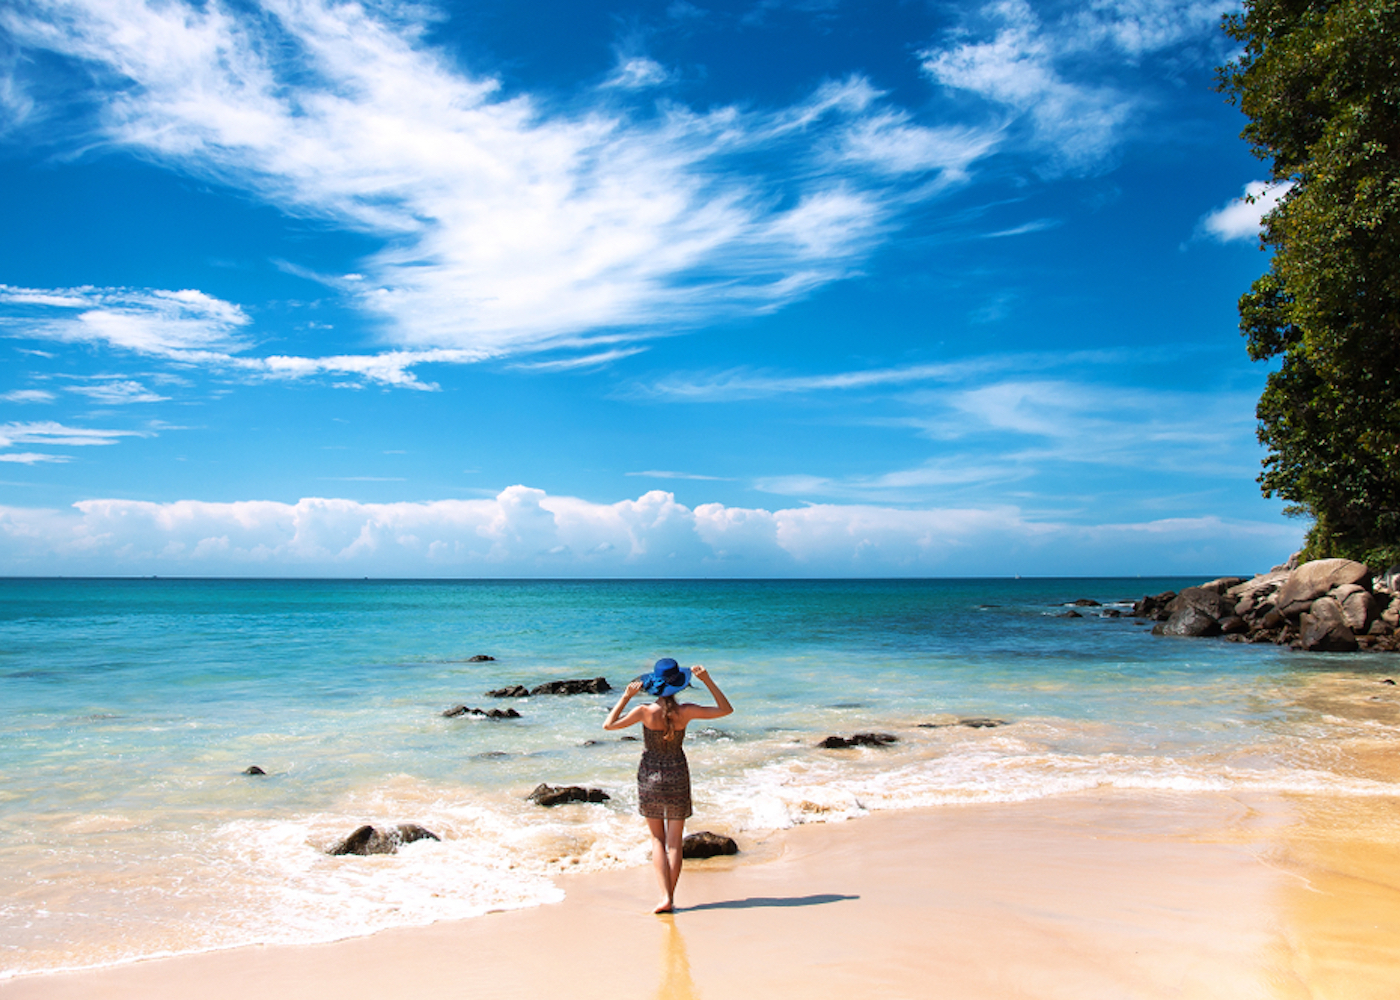 We just can't get enough of sunny Phuket